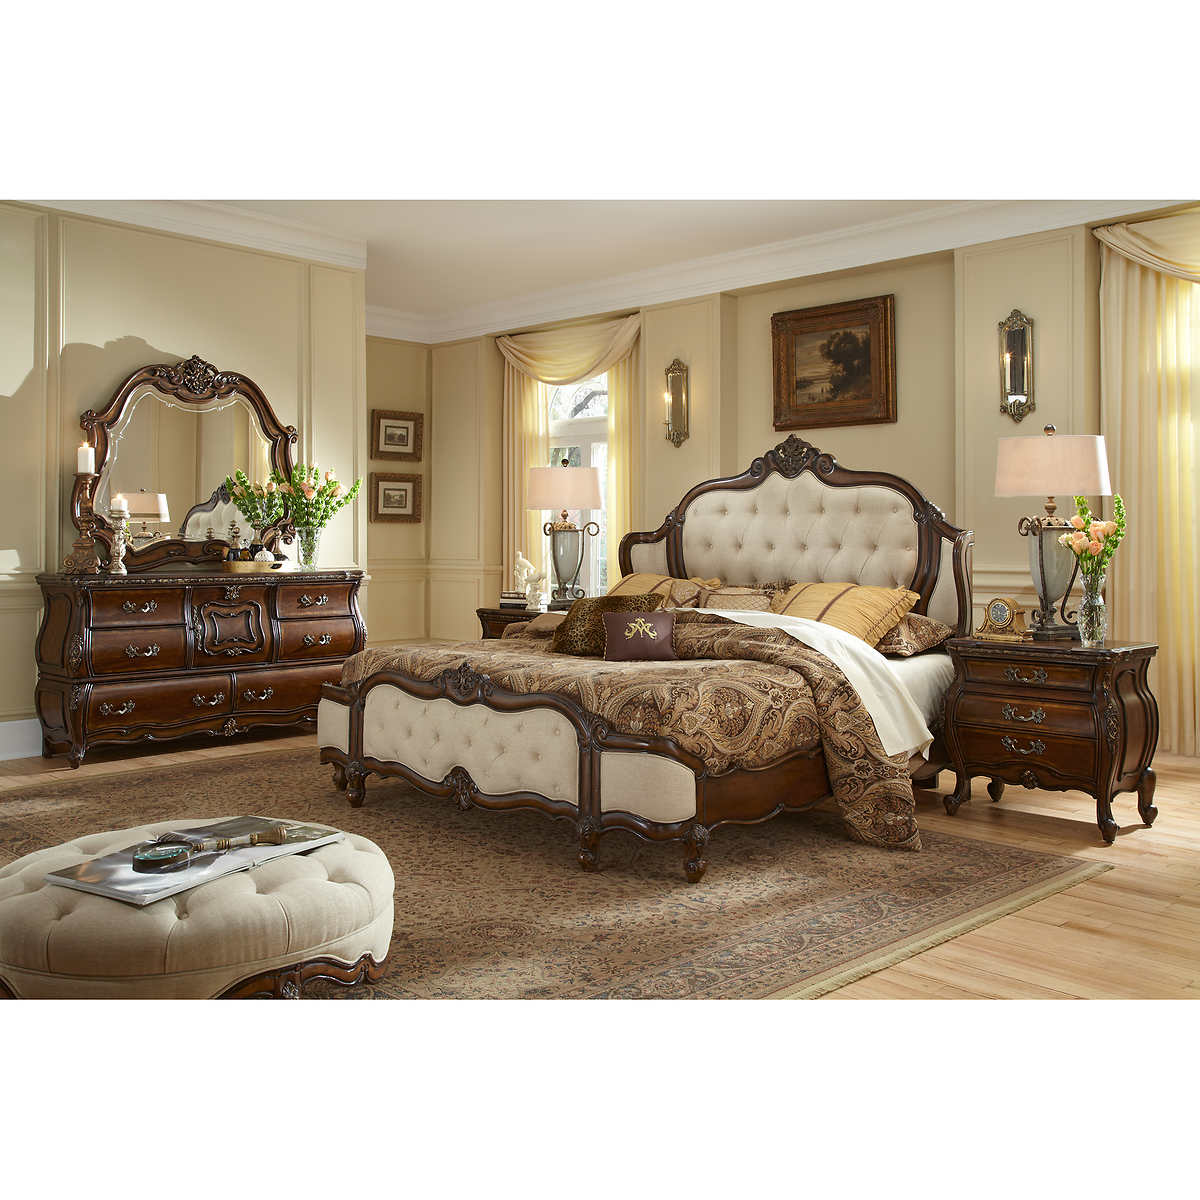 Nebraska Furniture Mart Bedroom Sets Nebraska Furniture Mart Bedroom Sets